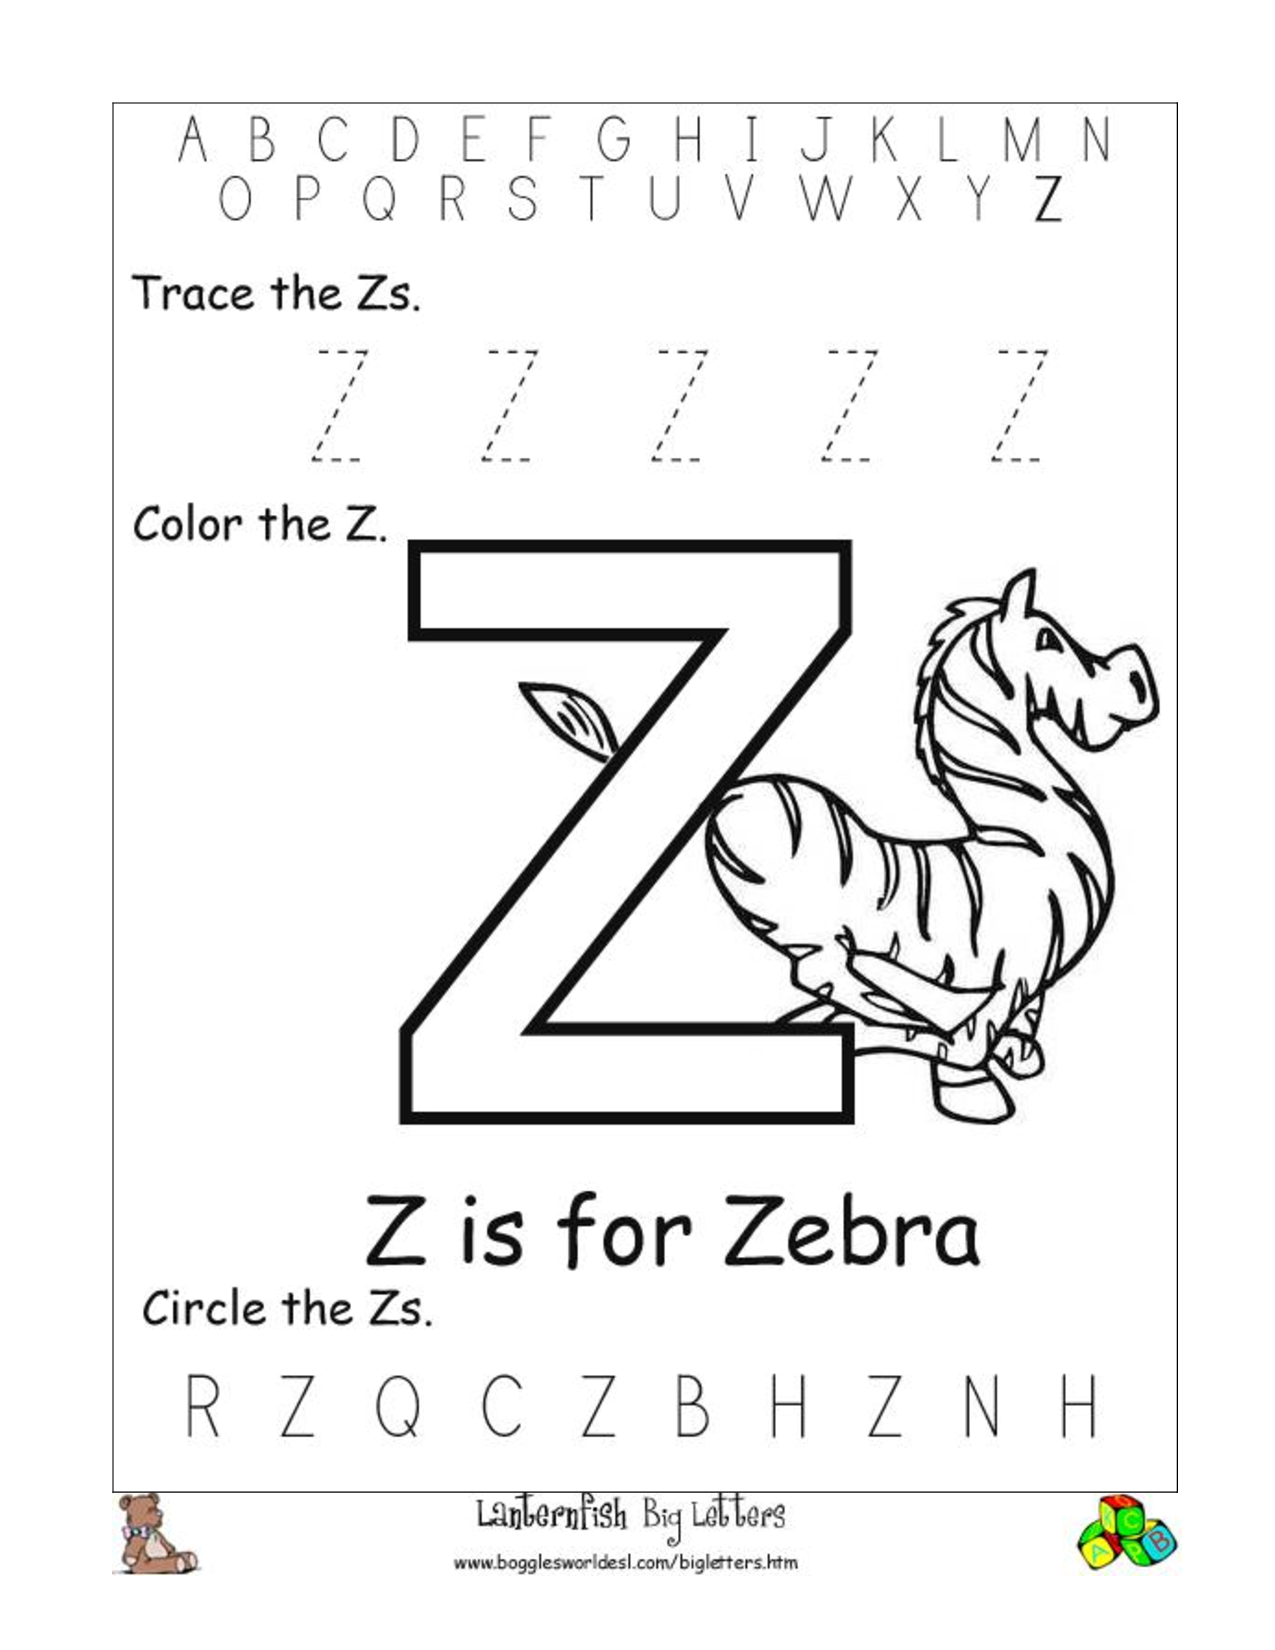 8 Images of Letter Z Printable Worksheets